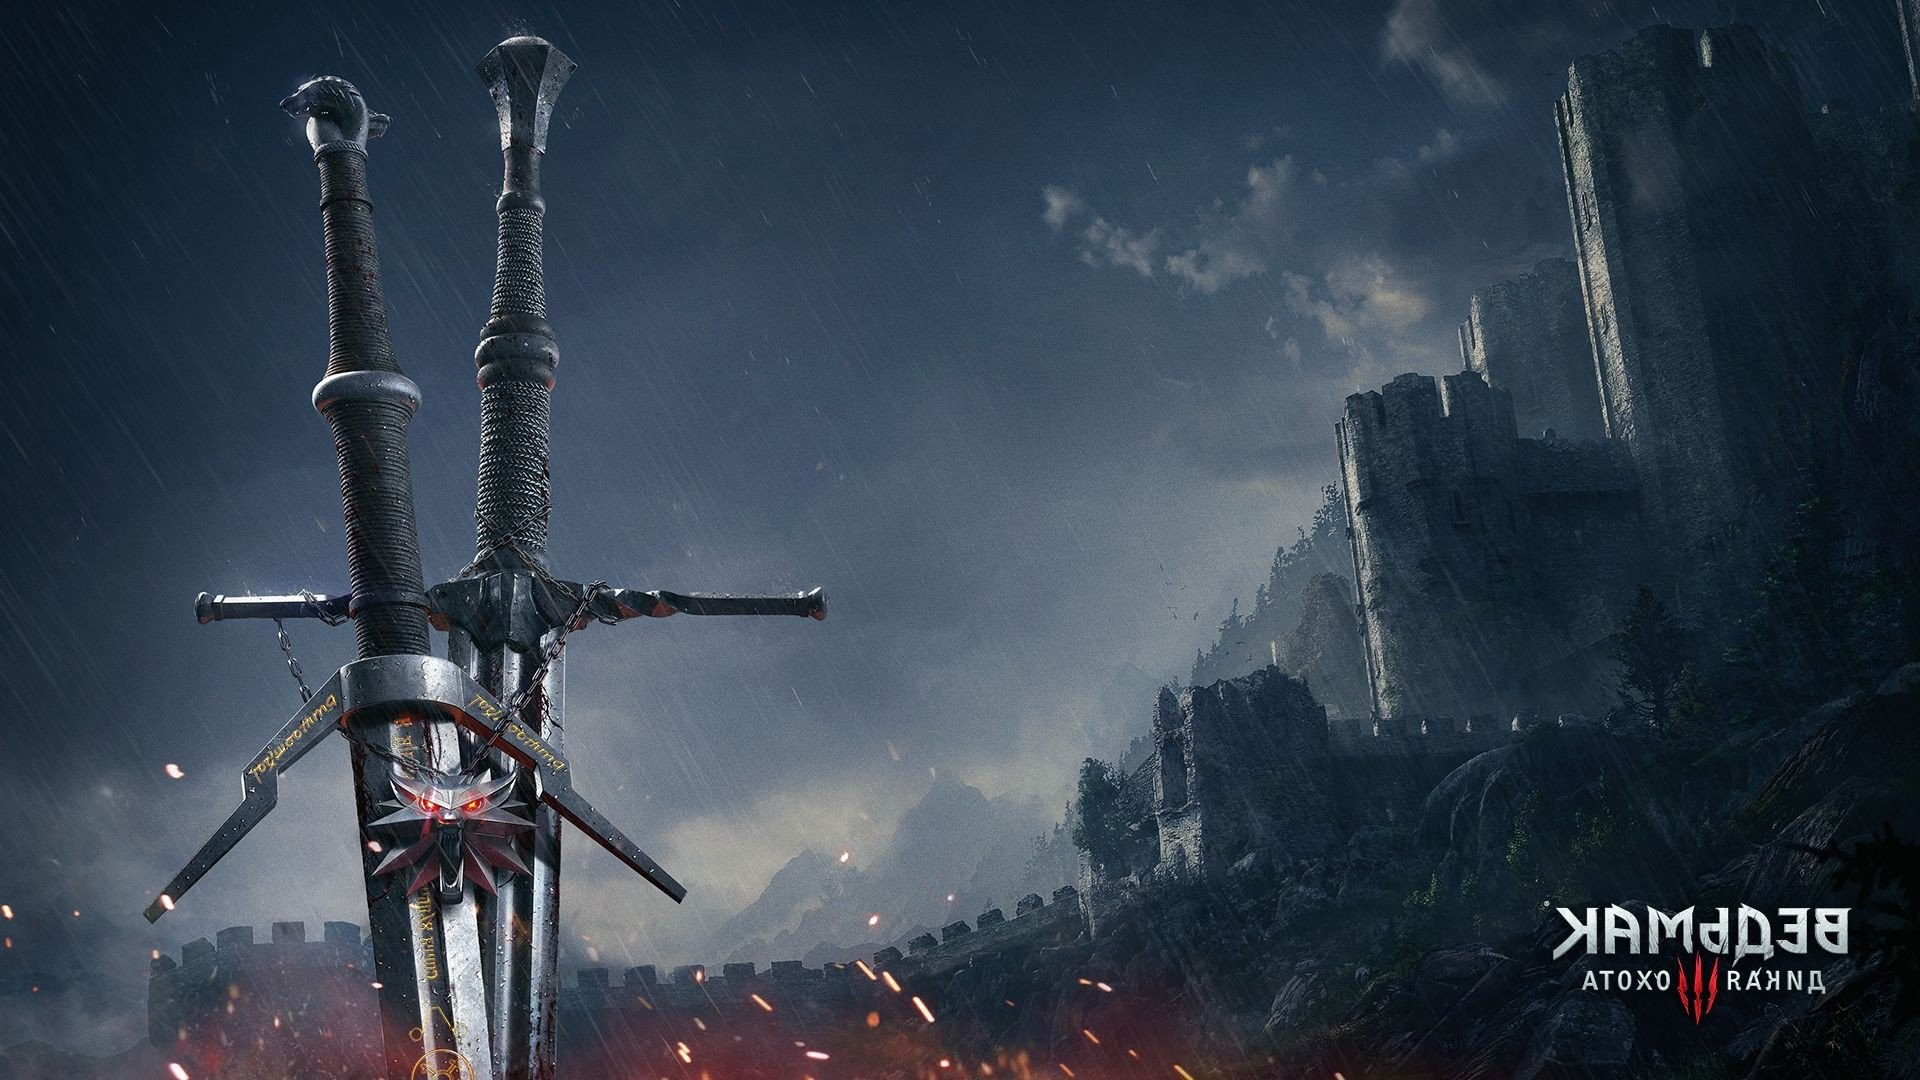 1920x1080 Wallpaper Geralt the corpse the Witcher swords The Witcher